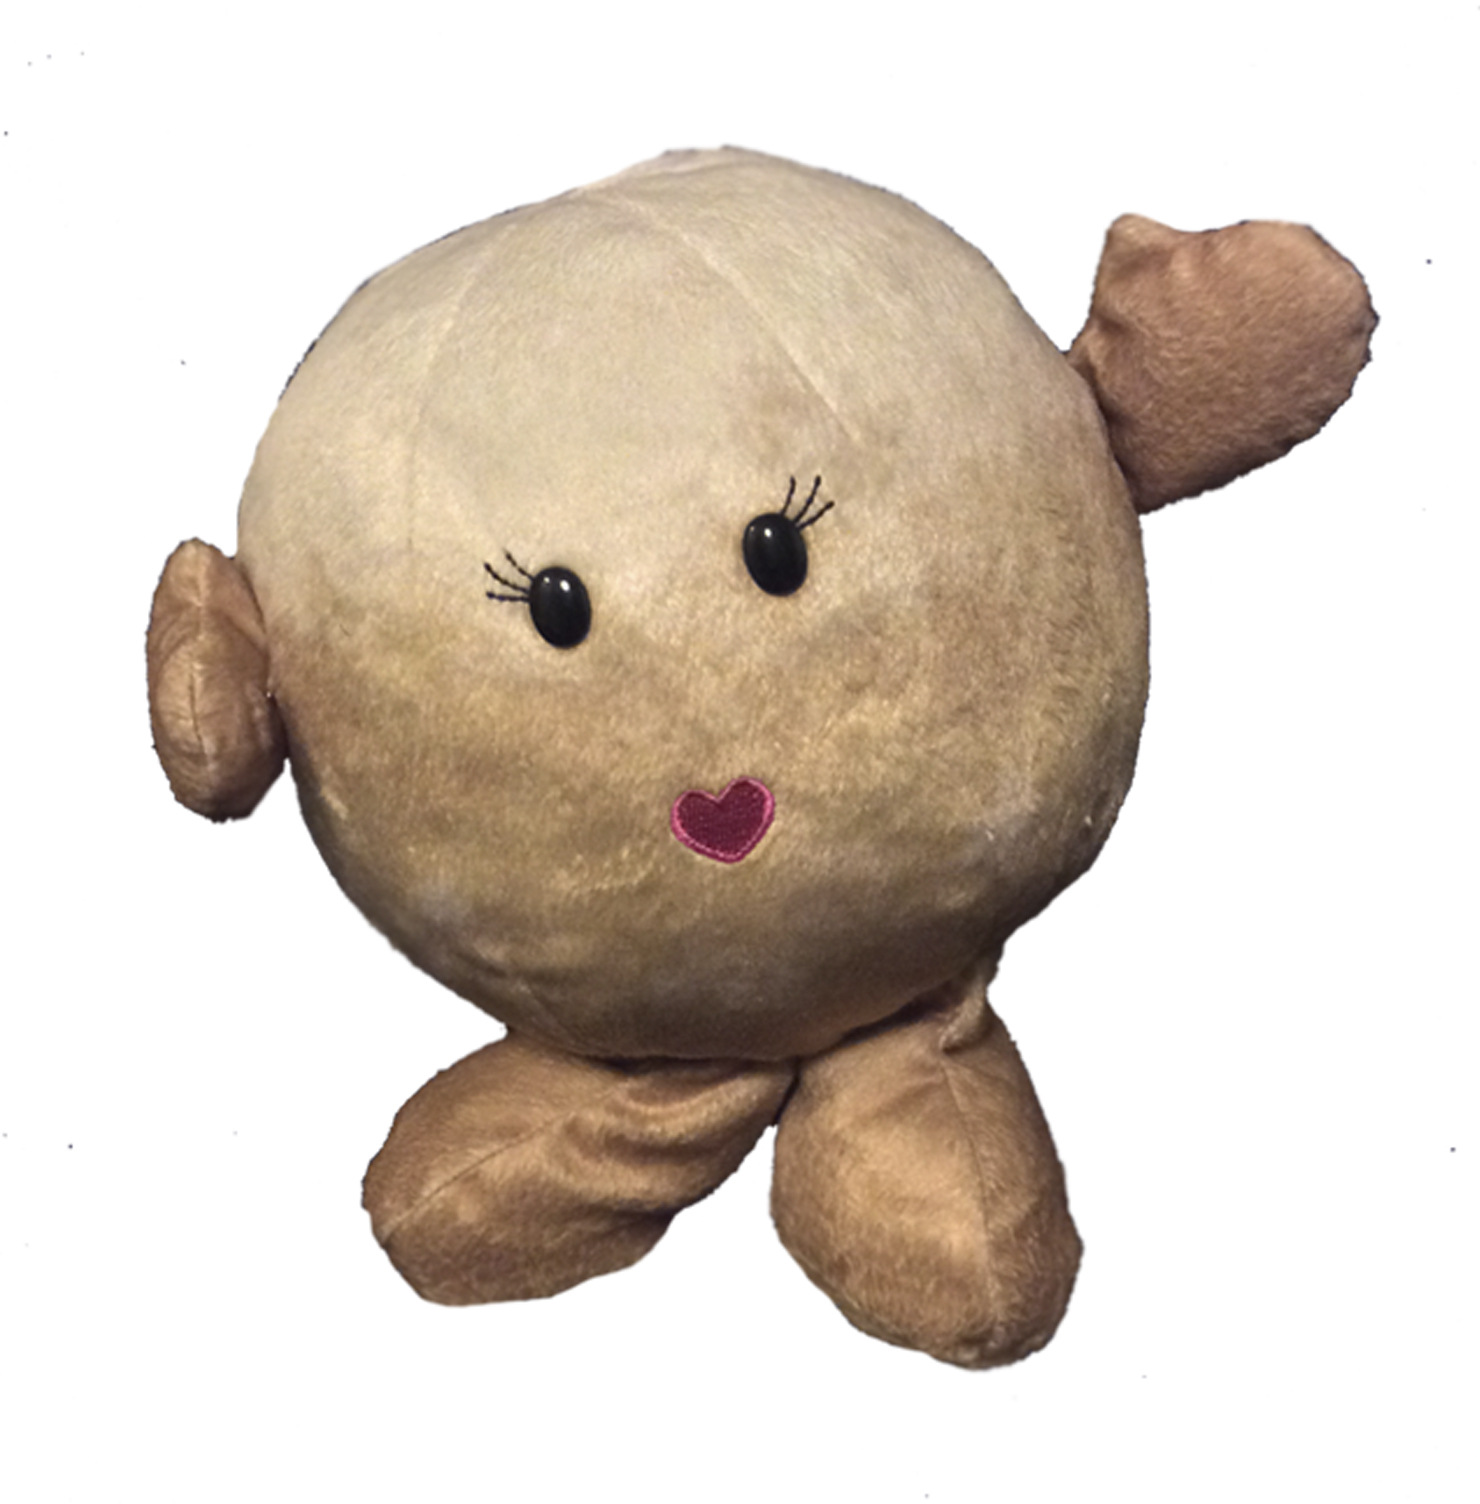 Plush Venus Buddy,748252471710